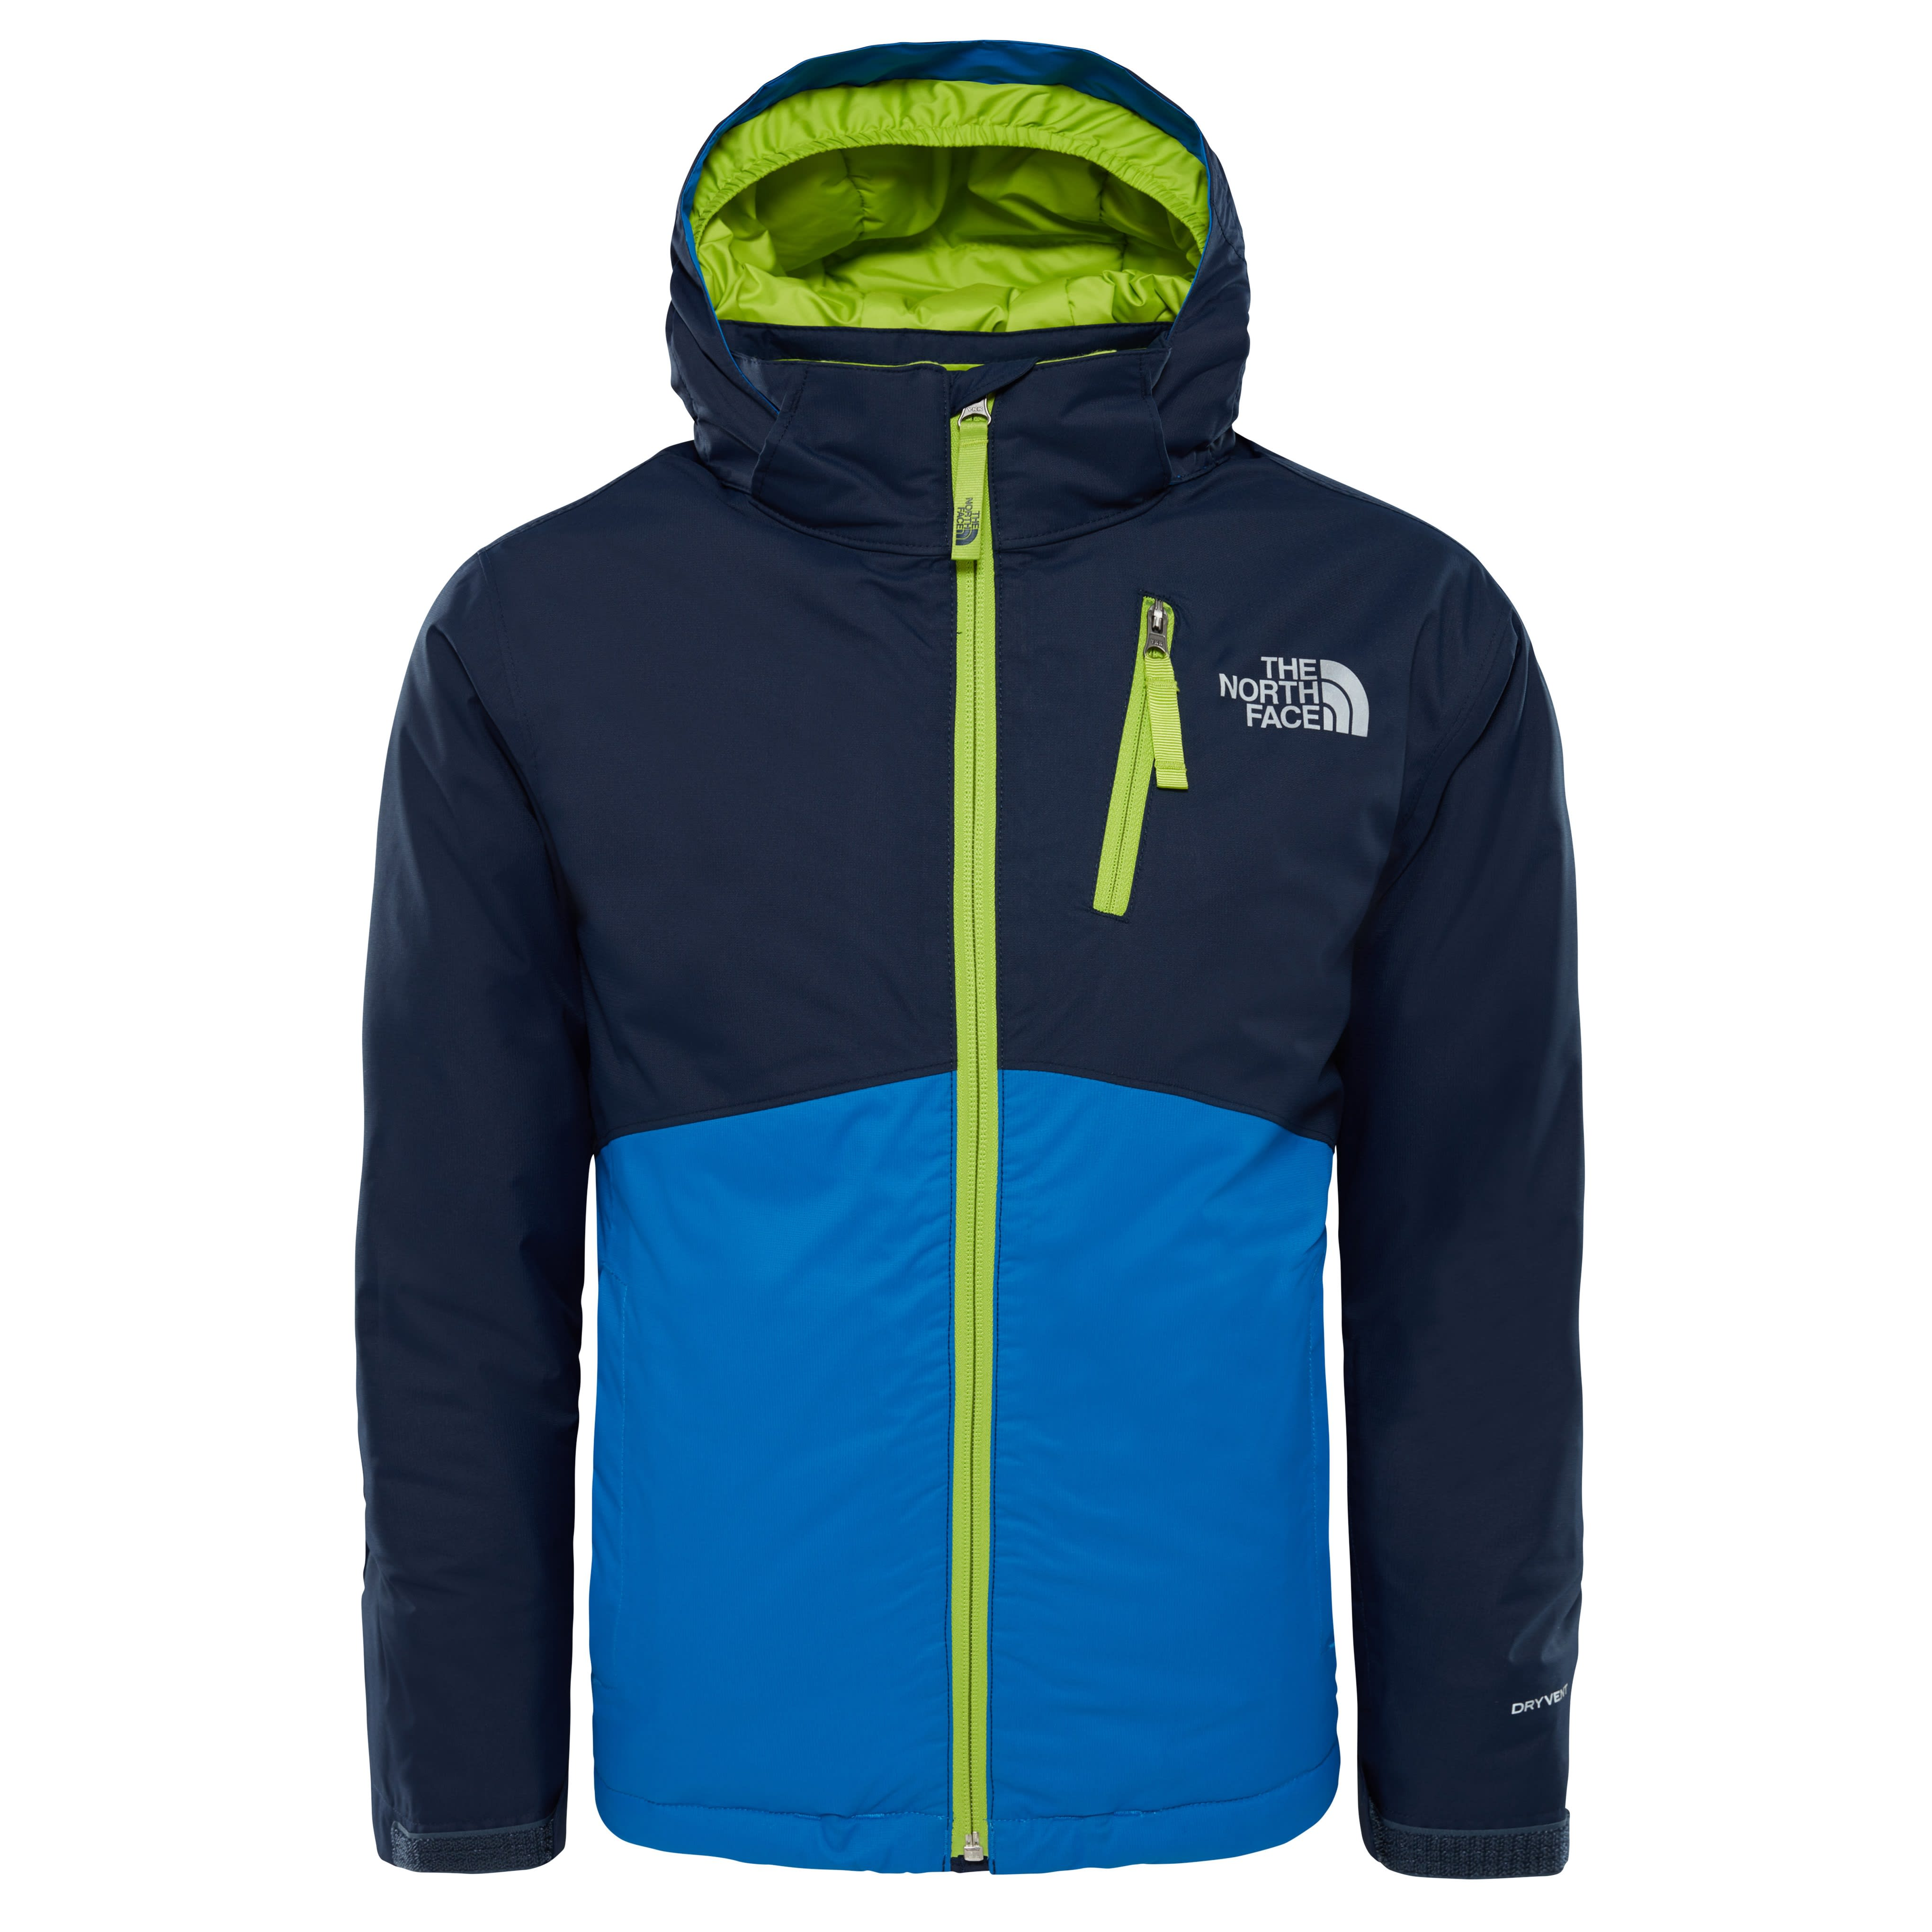 Youth Snowquest Jacket jacka